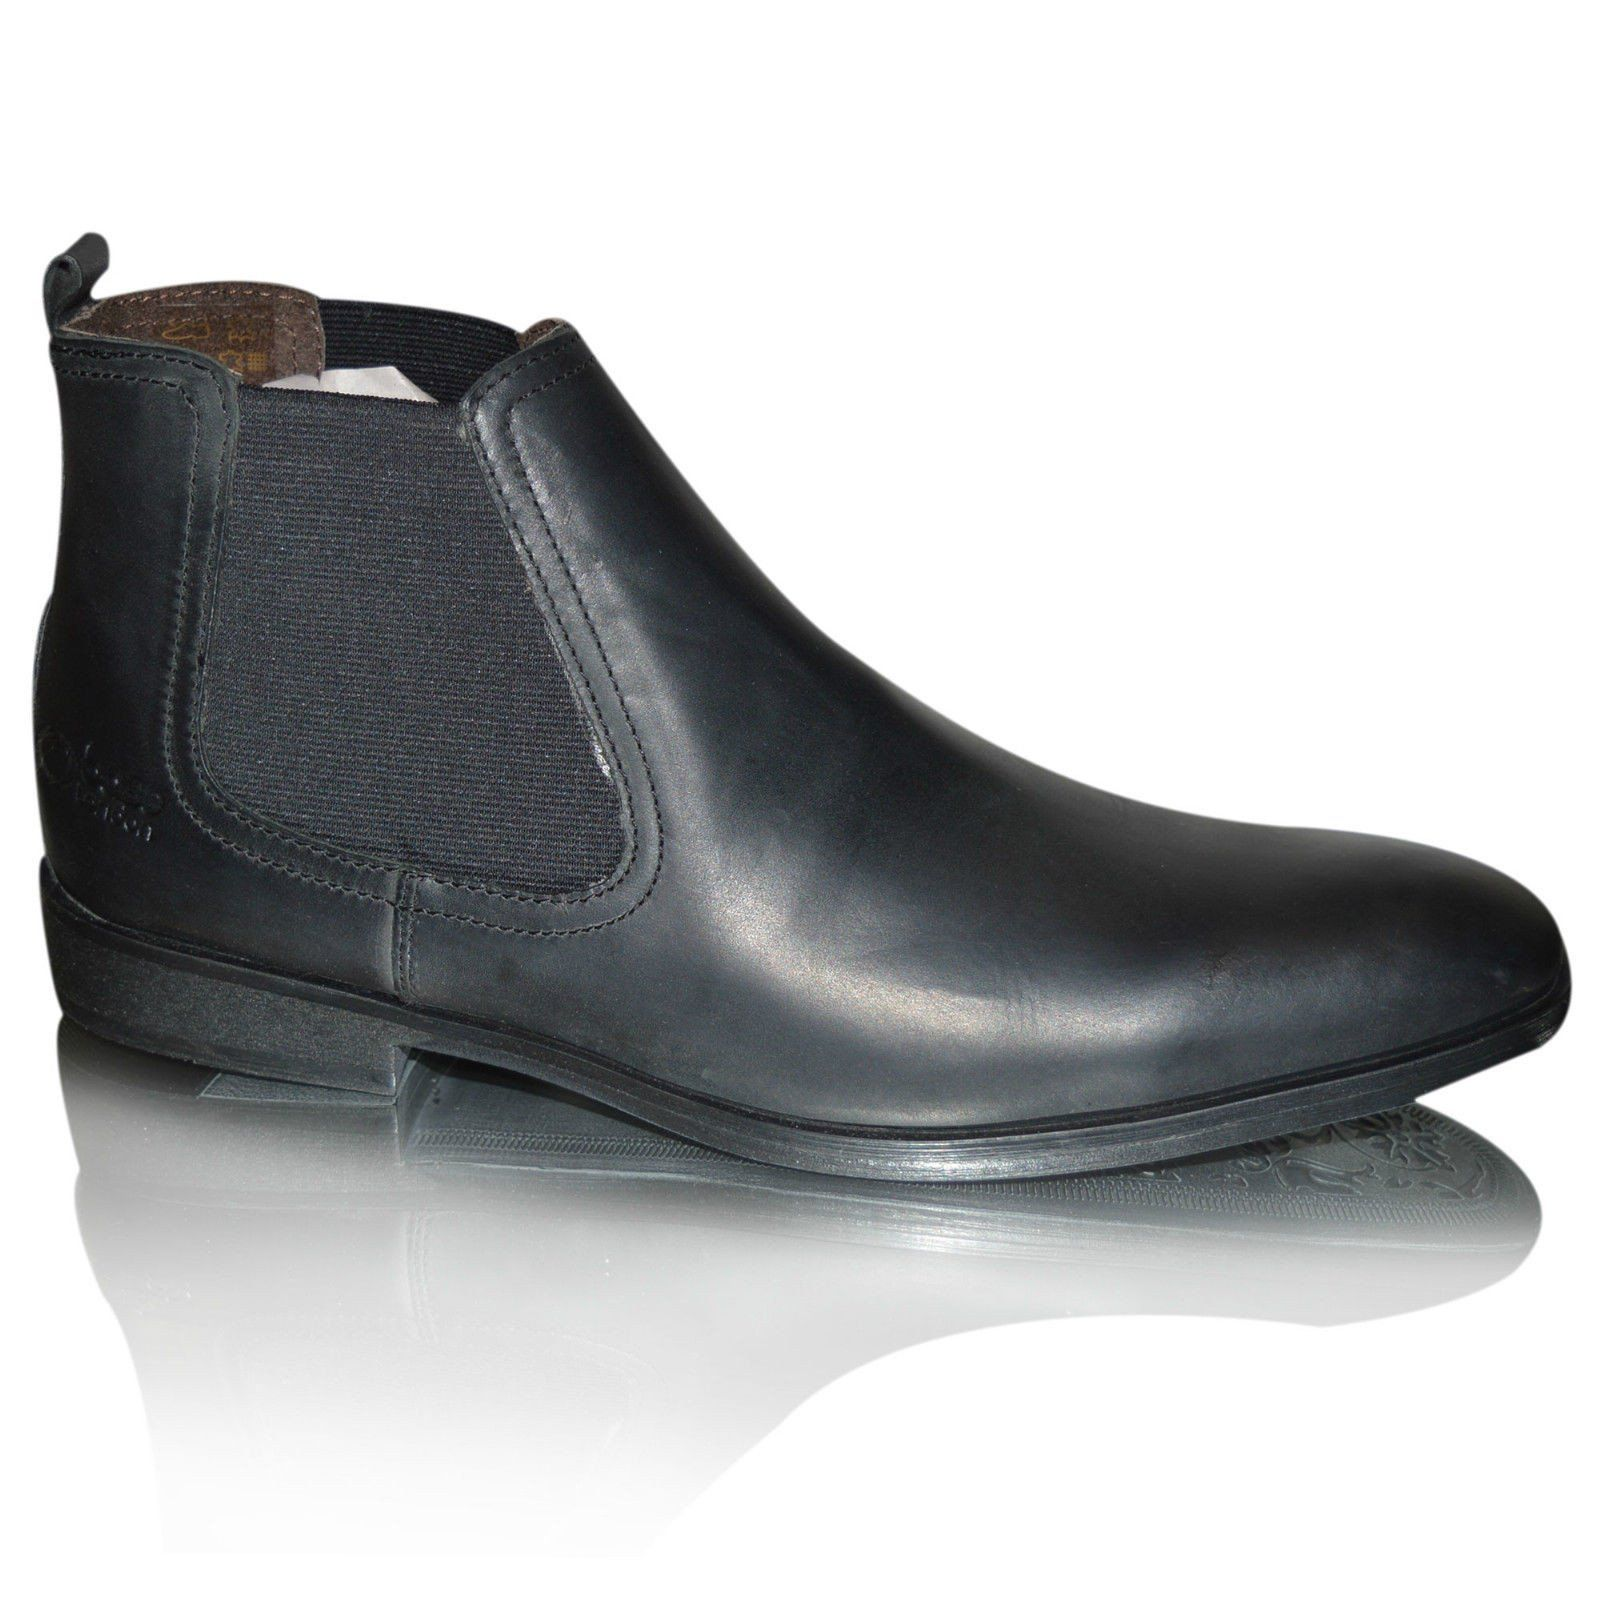 Mens 100% Leather Chelsea Ankle Biker Boots